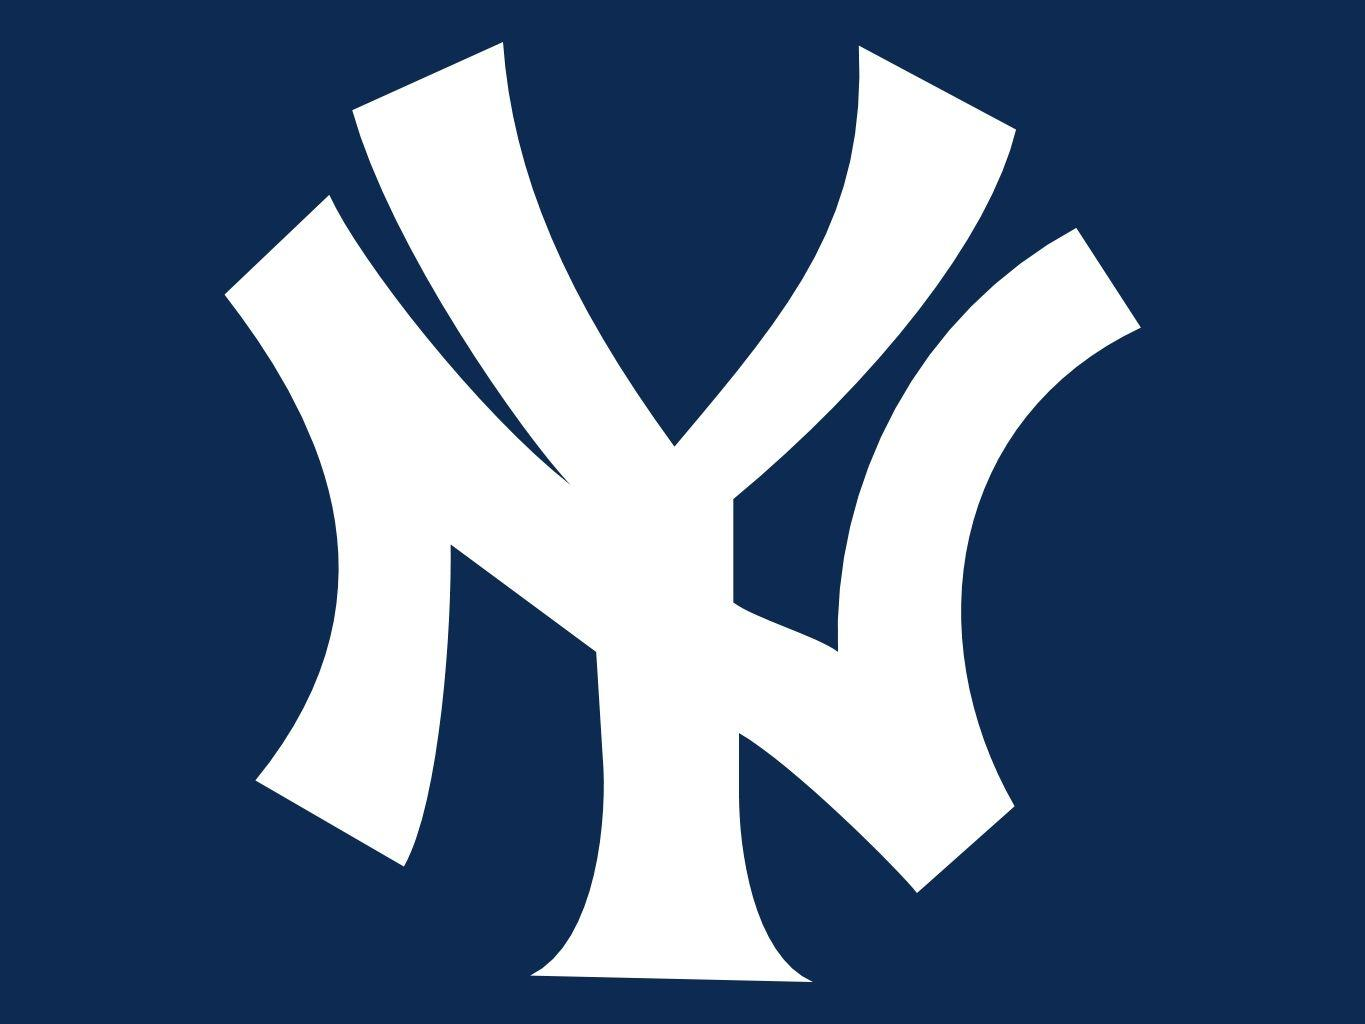 ny yankees logo wallpapers wallpaper cave rh wallpapercave com  new york yankee logo wallpaper